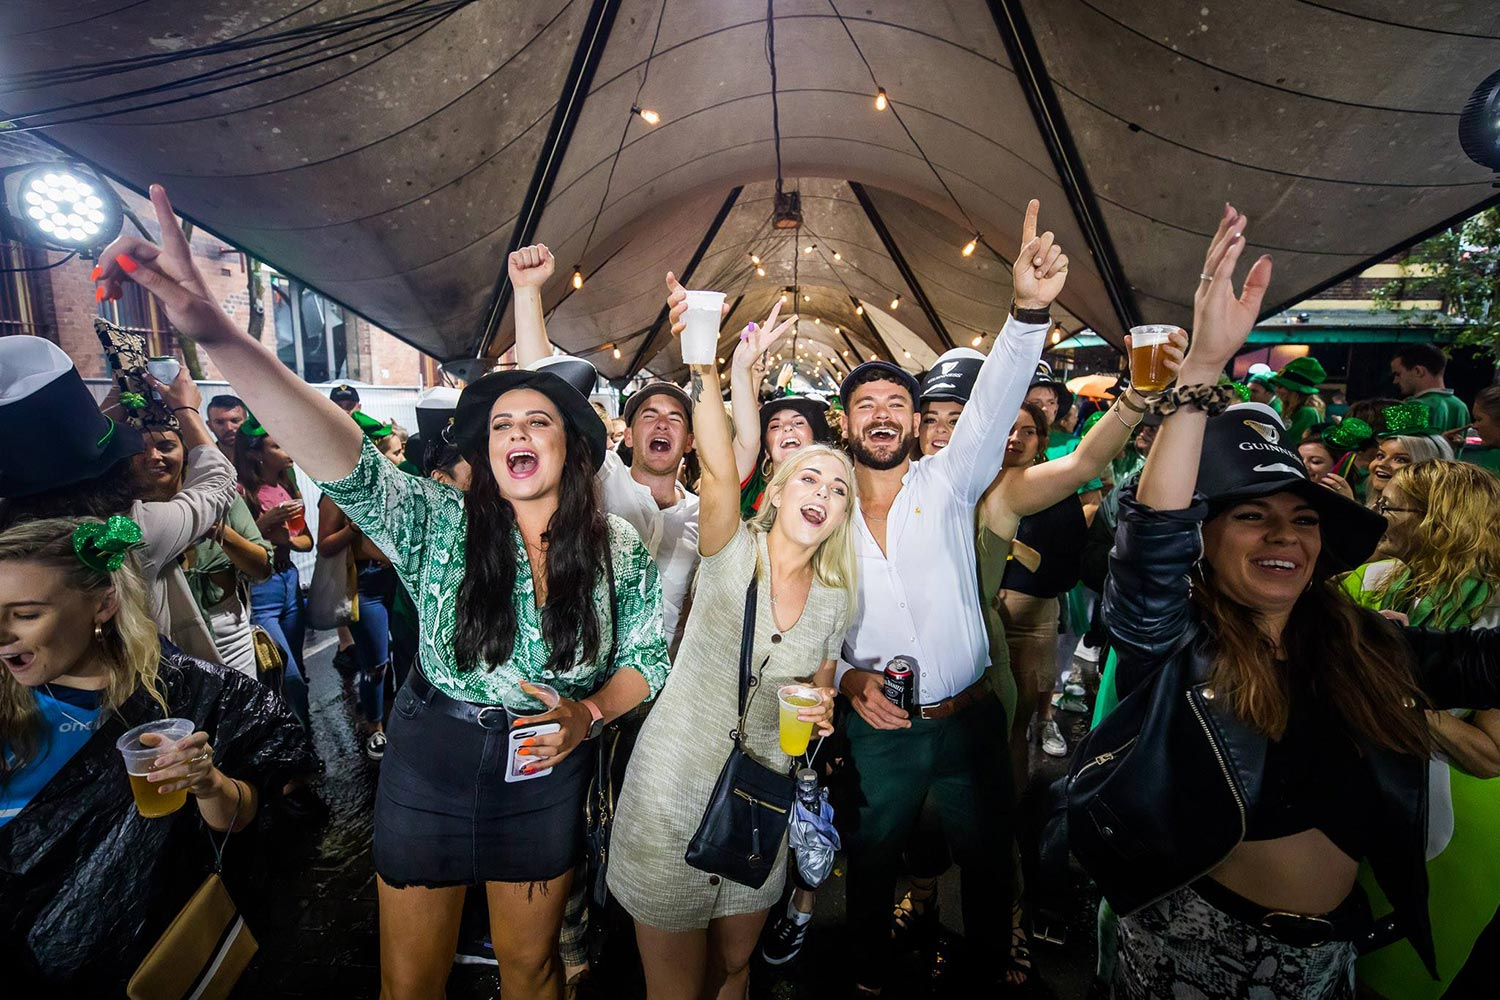 Thousands of revellers attended the Sydney St Patrick's Day festivities in The Rocks this year.